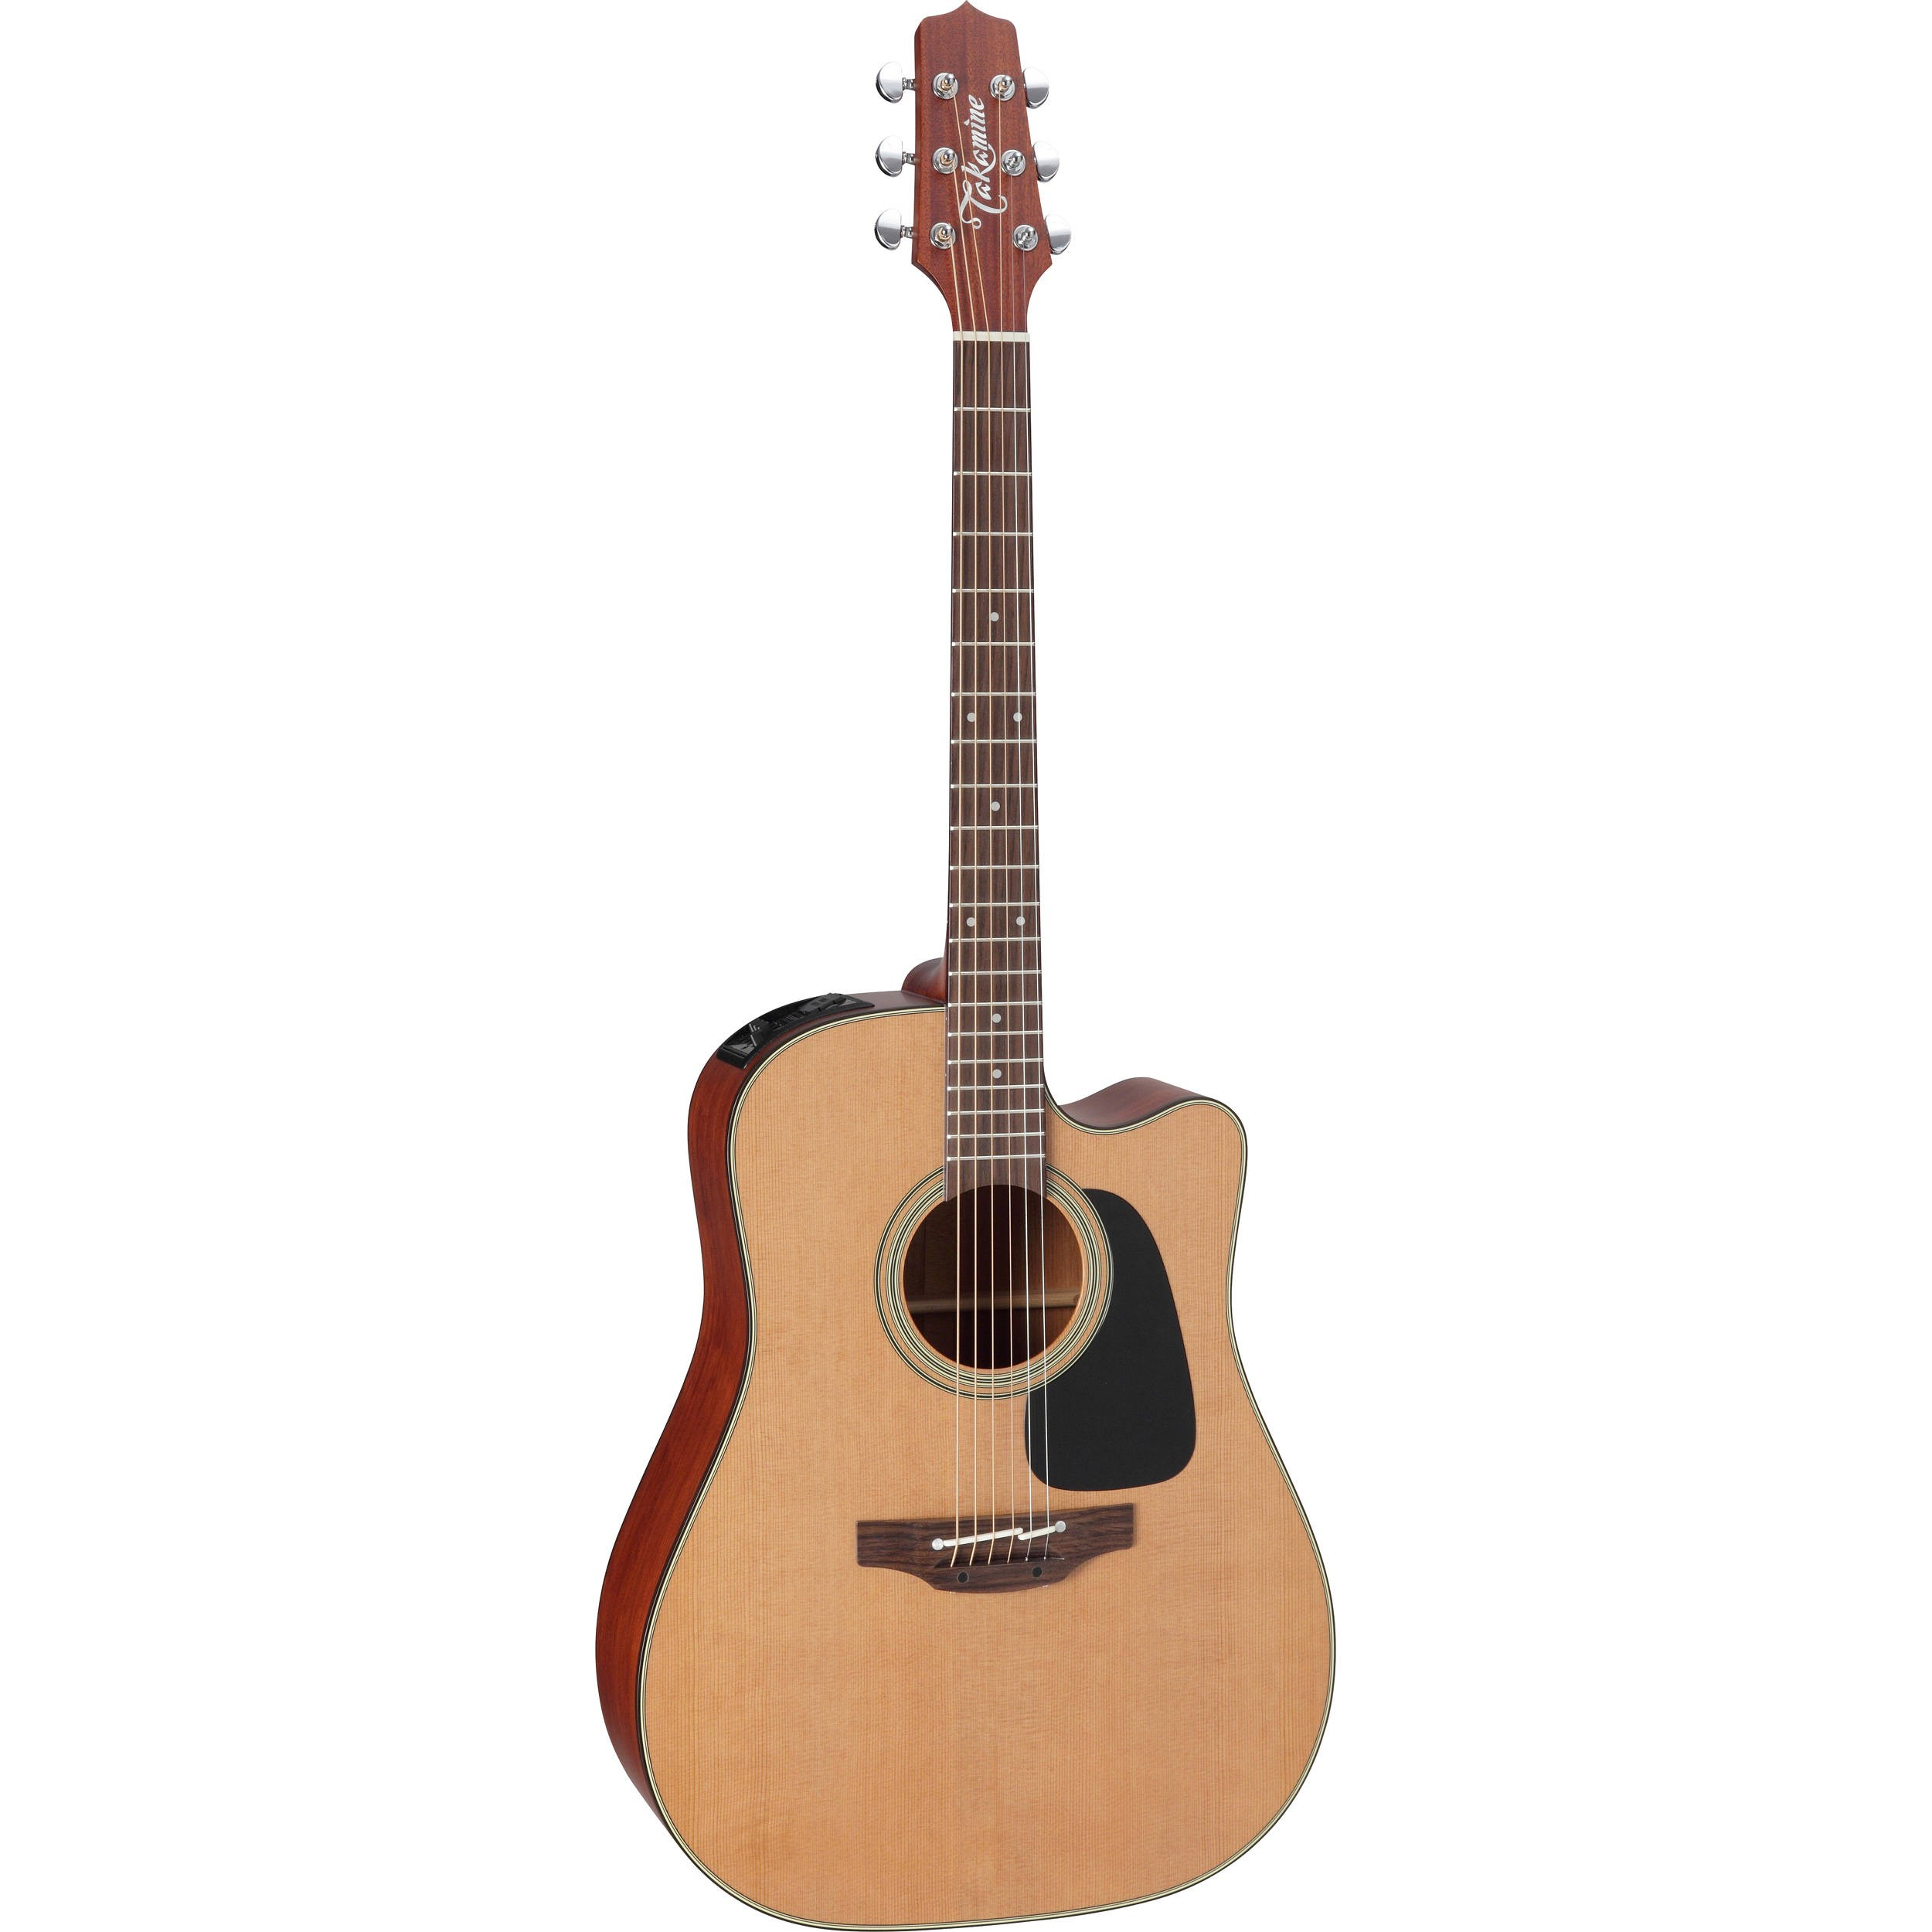 takamine p1dc dreadnought acoustic electric guitar with case. Black Bedroom Furniture Sets. Home Design Ideas